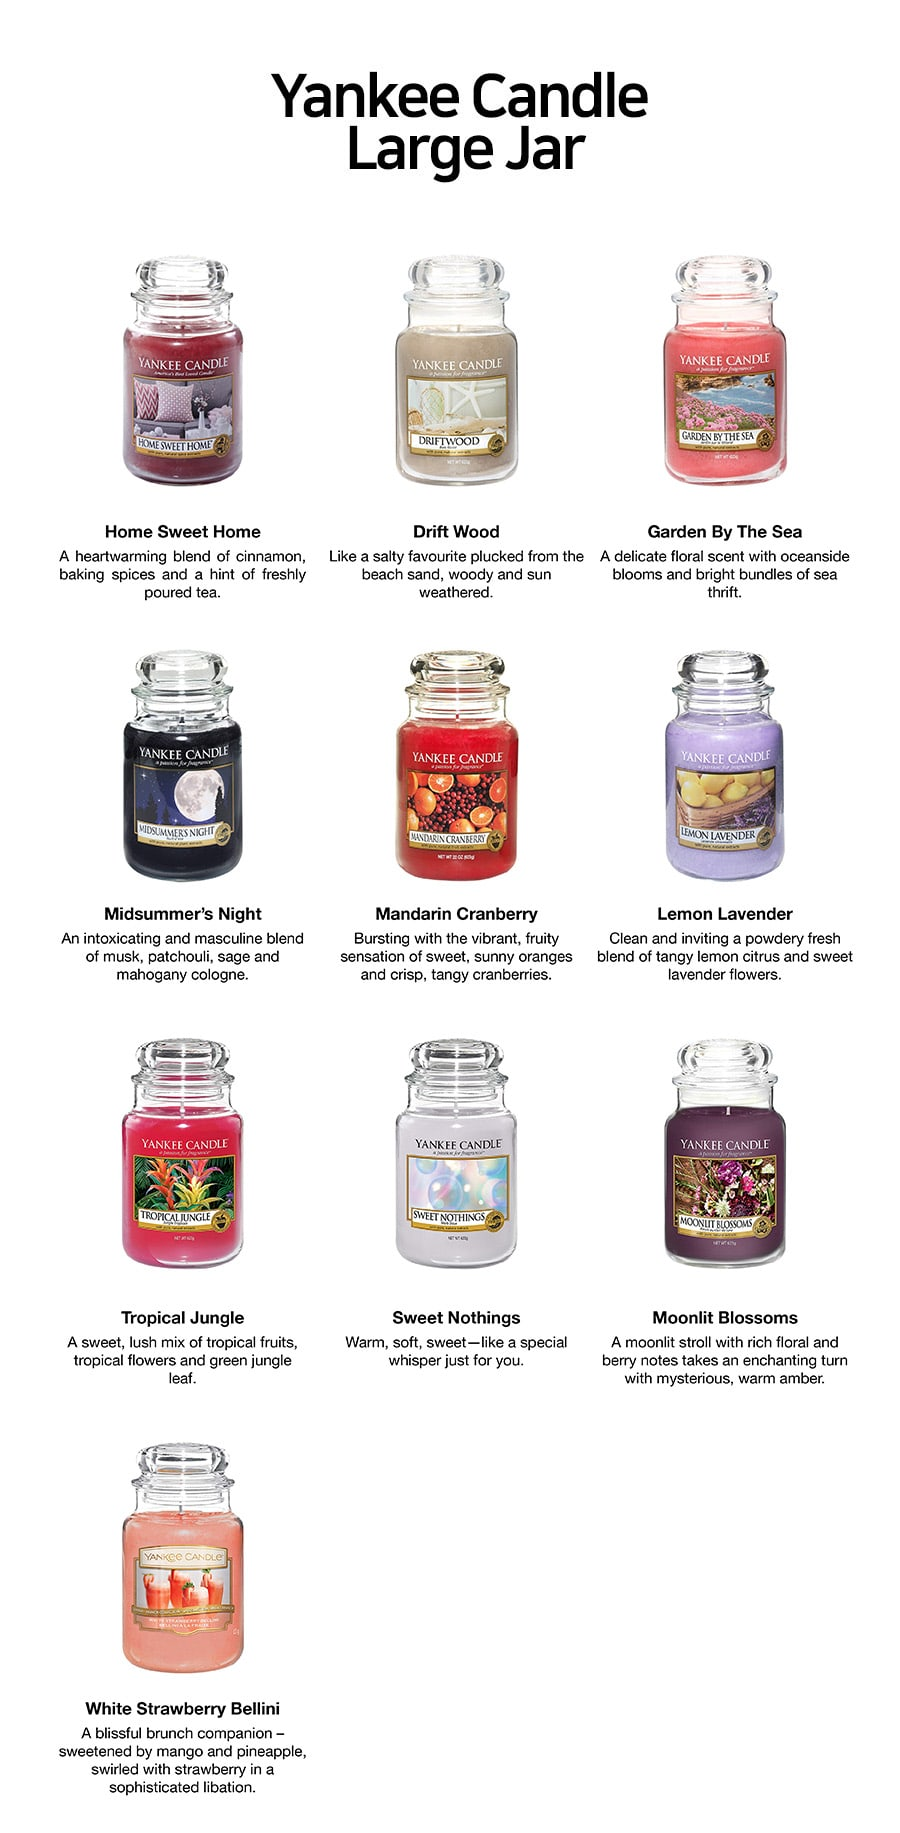 Jar Candles Sweet Nothings- Scents